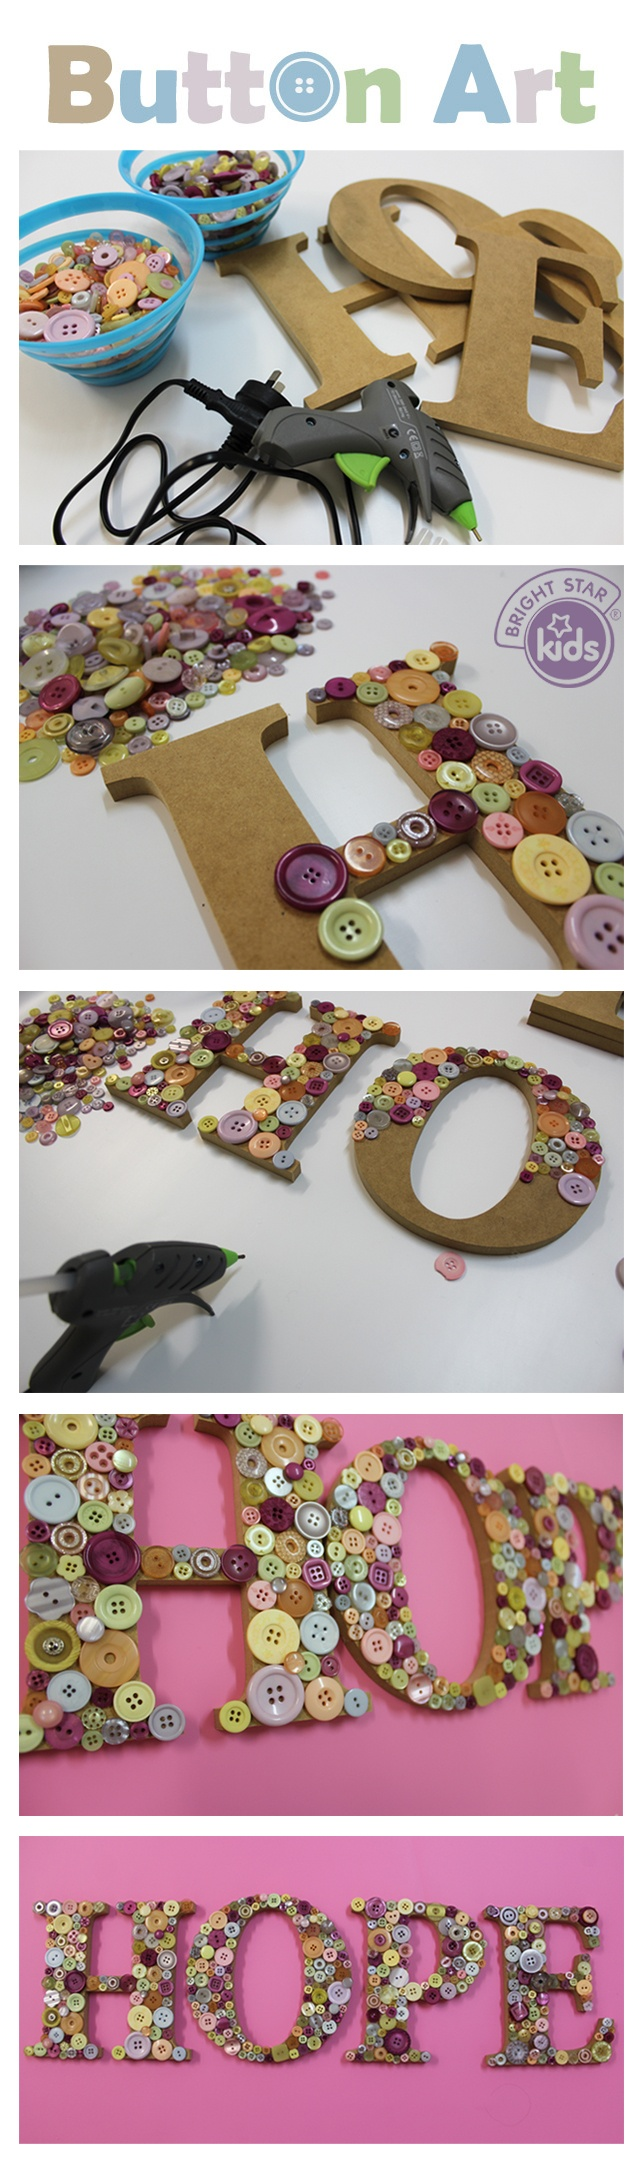 DIY button crafts and arts button letters fun projects for kids